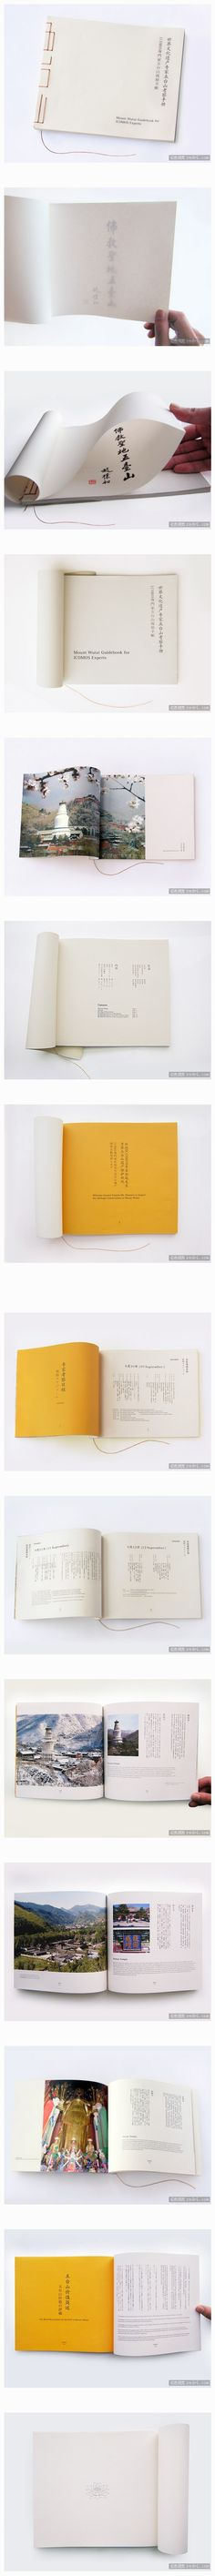 Elegant & simple. Beautiful use of colour, layout & craftmanship. 世界文化遗产专家五台山考察手册设计